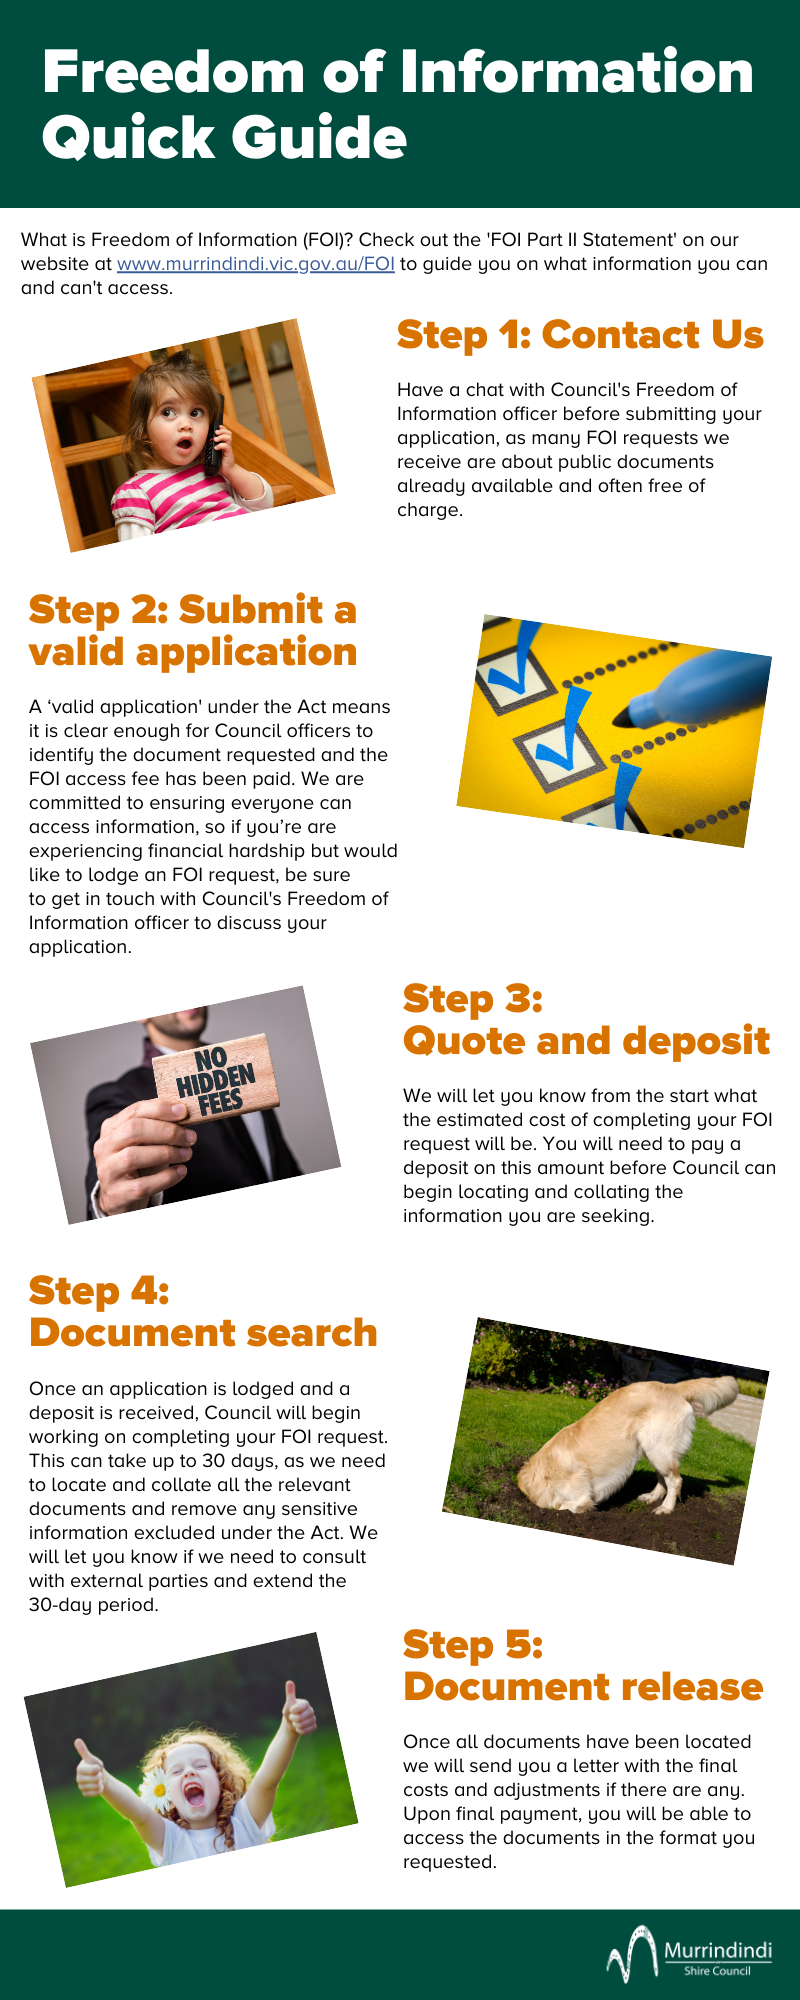 FOI Quick Guide Infographic.png